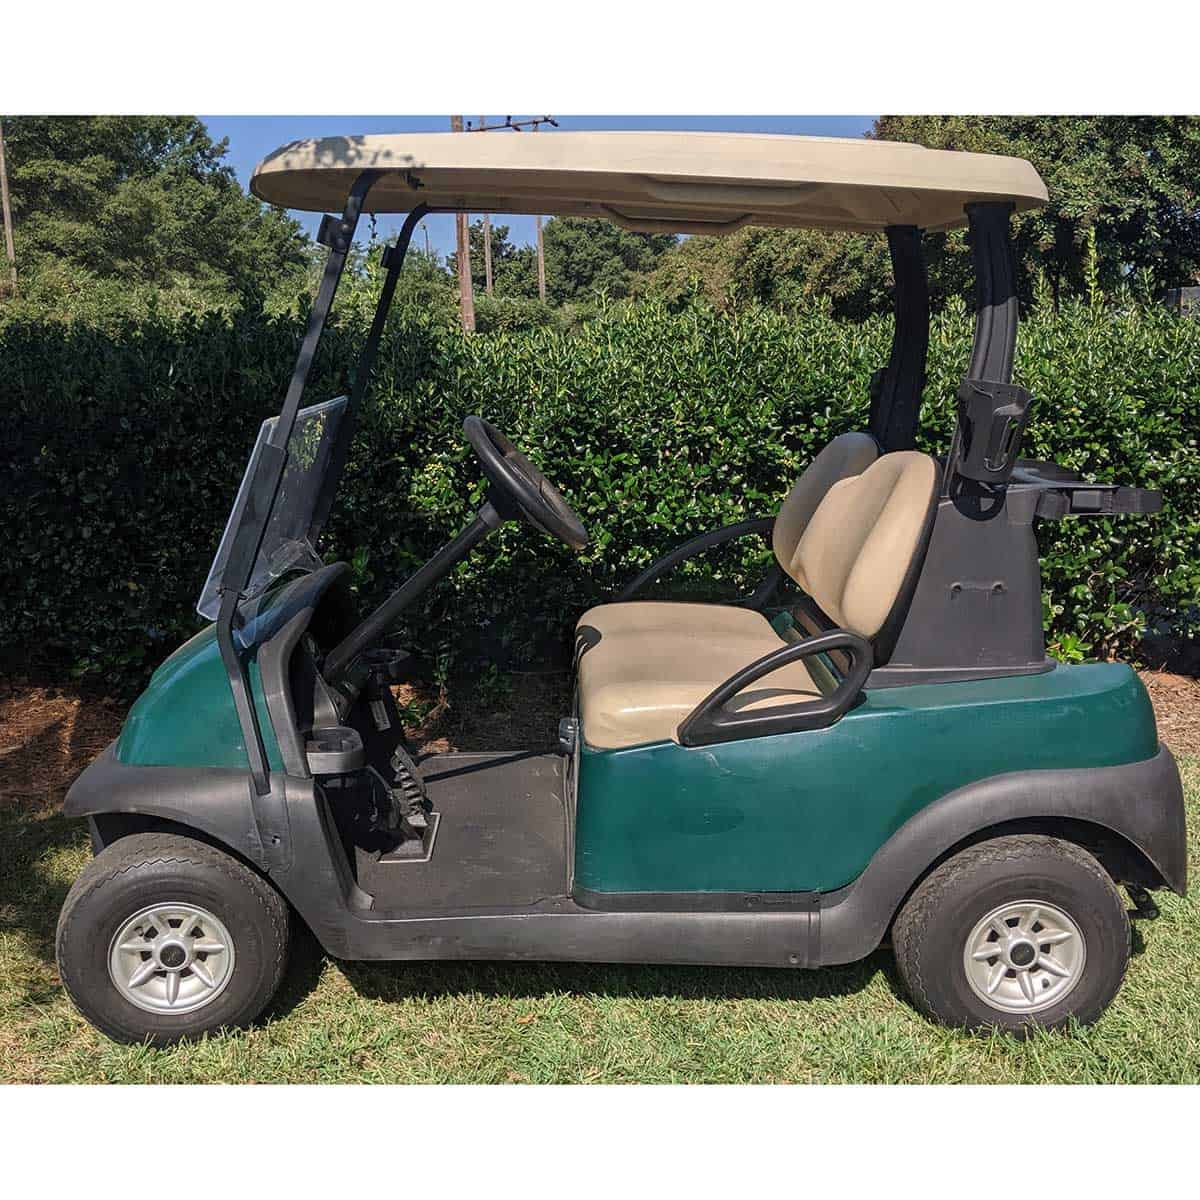 Green-2015-Club-Car-2-Pass-Side